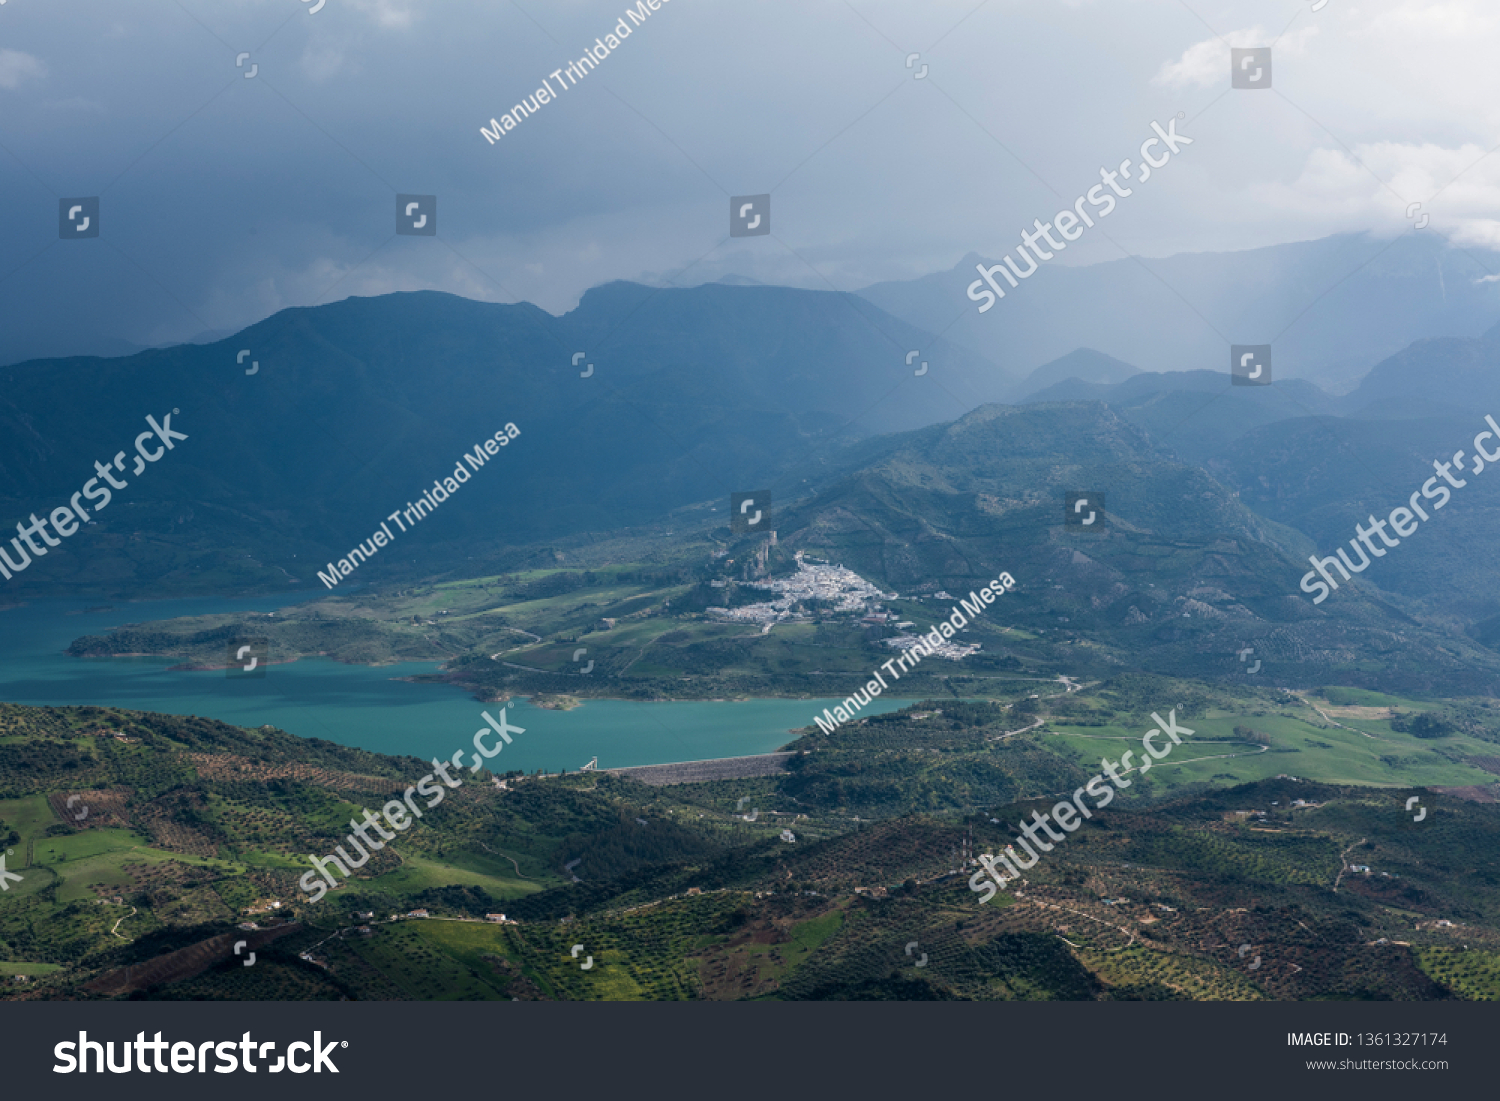 A cloudy and rainy day in Zahara de la Sierra, Spanish municipality of the province of Cádiz, in the hills of Andalusia